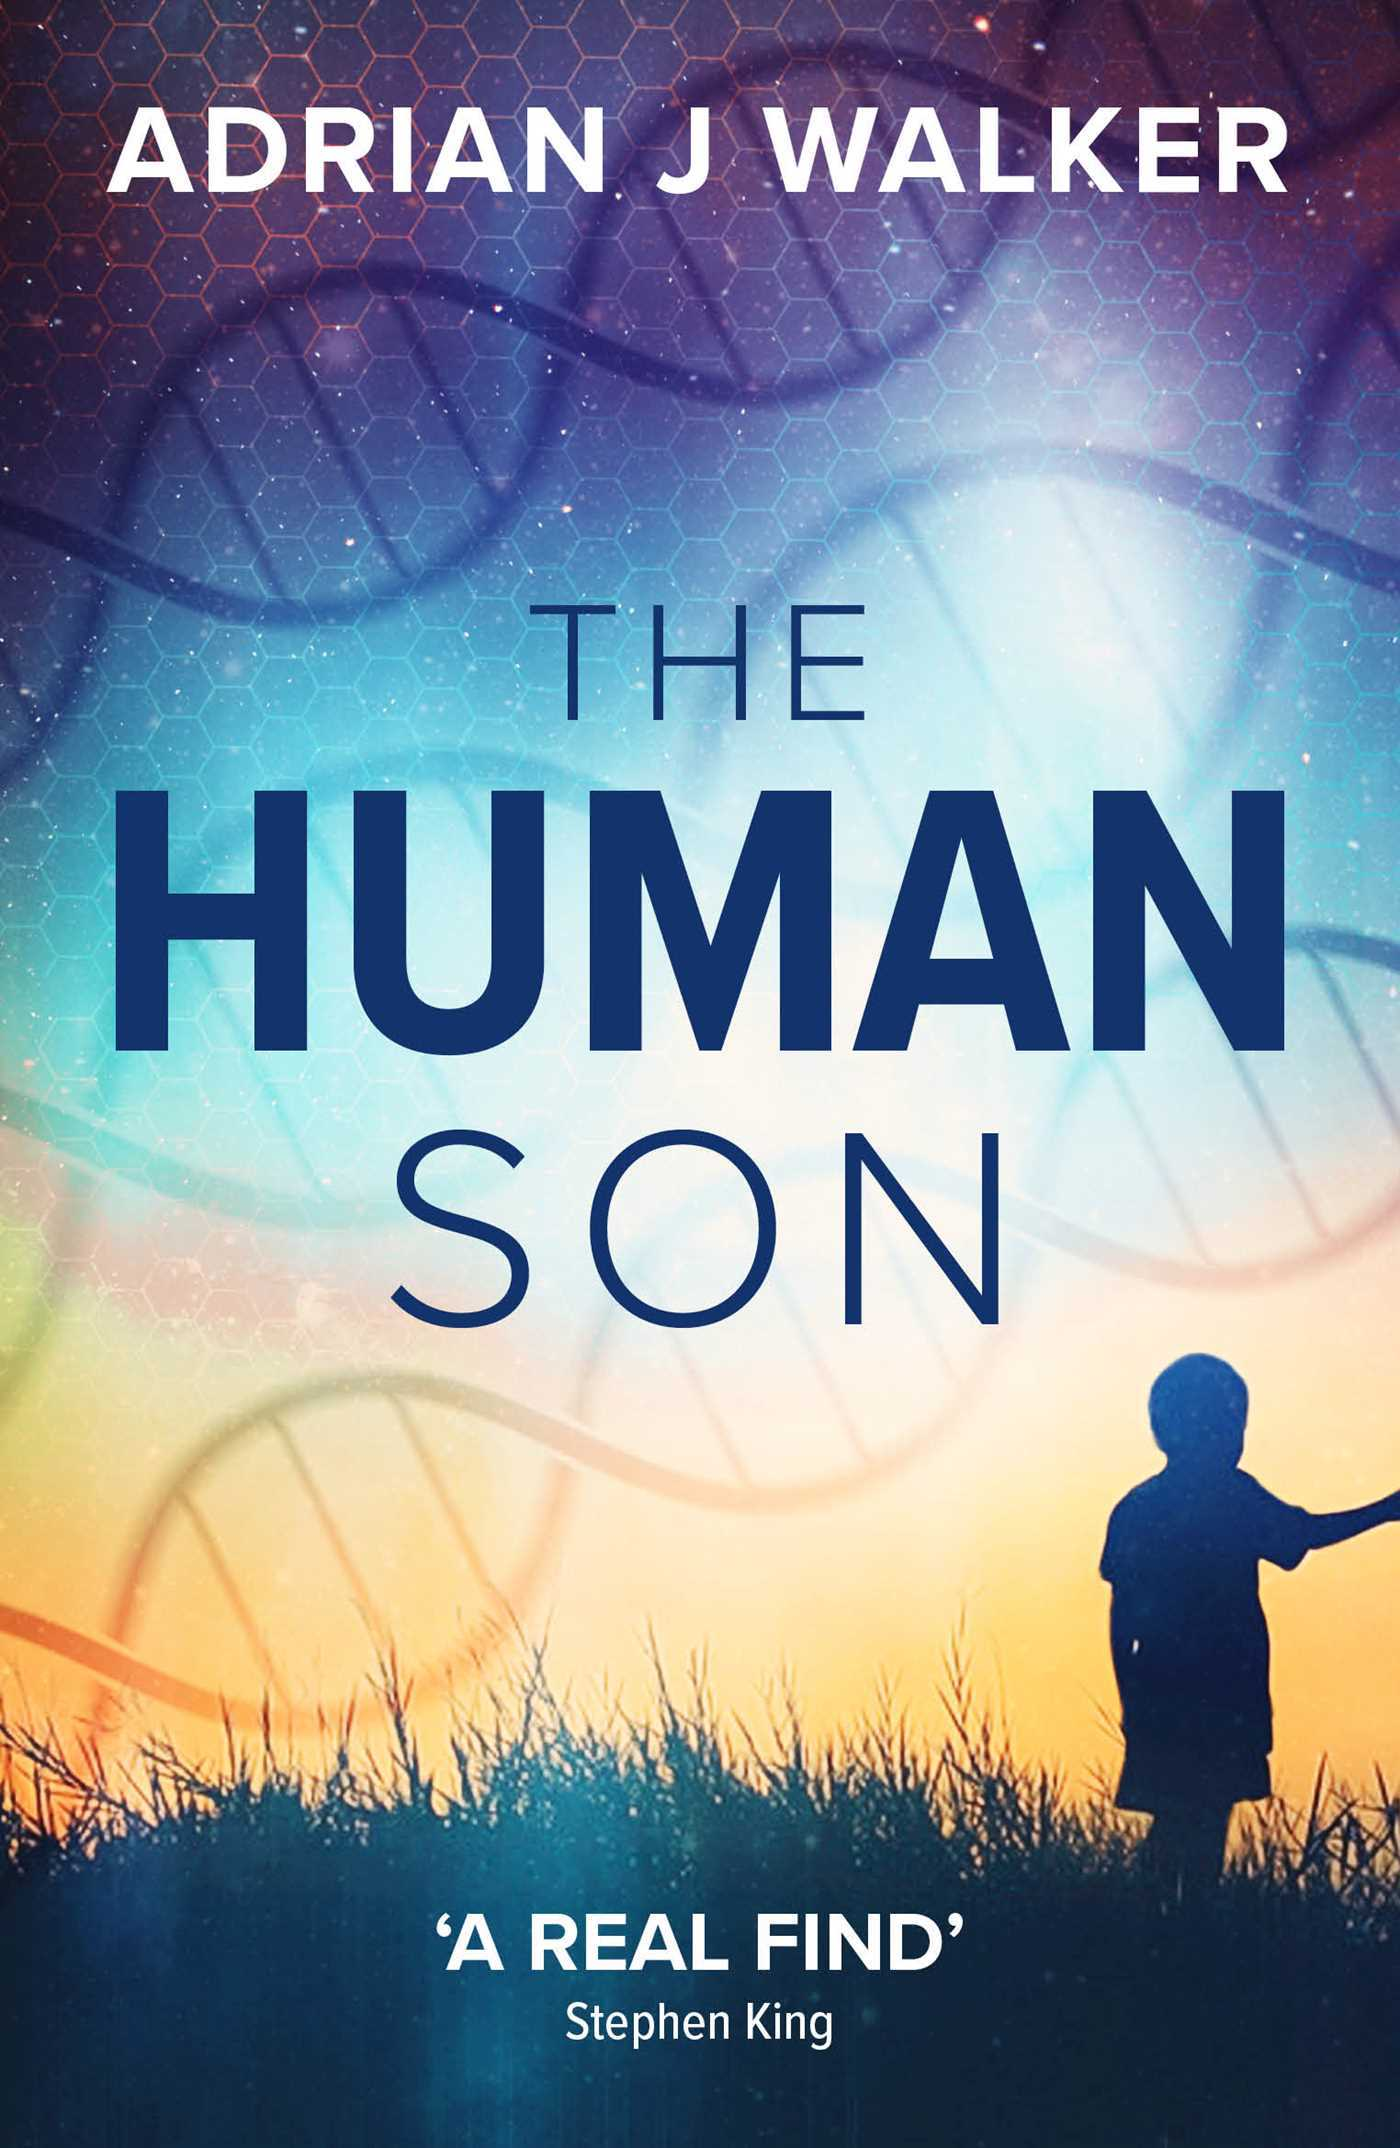 The Human Son - Adrian J. Walker